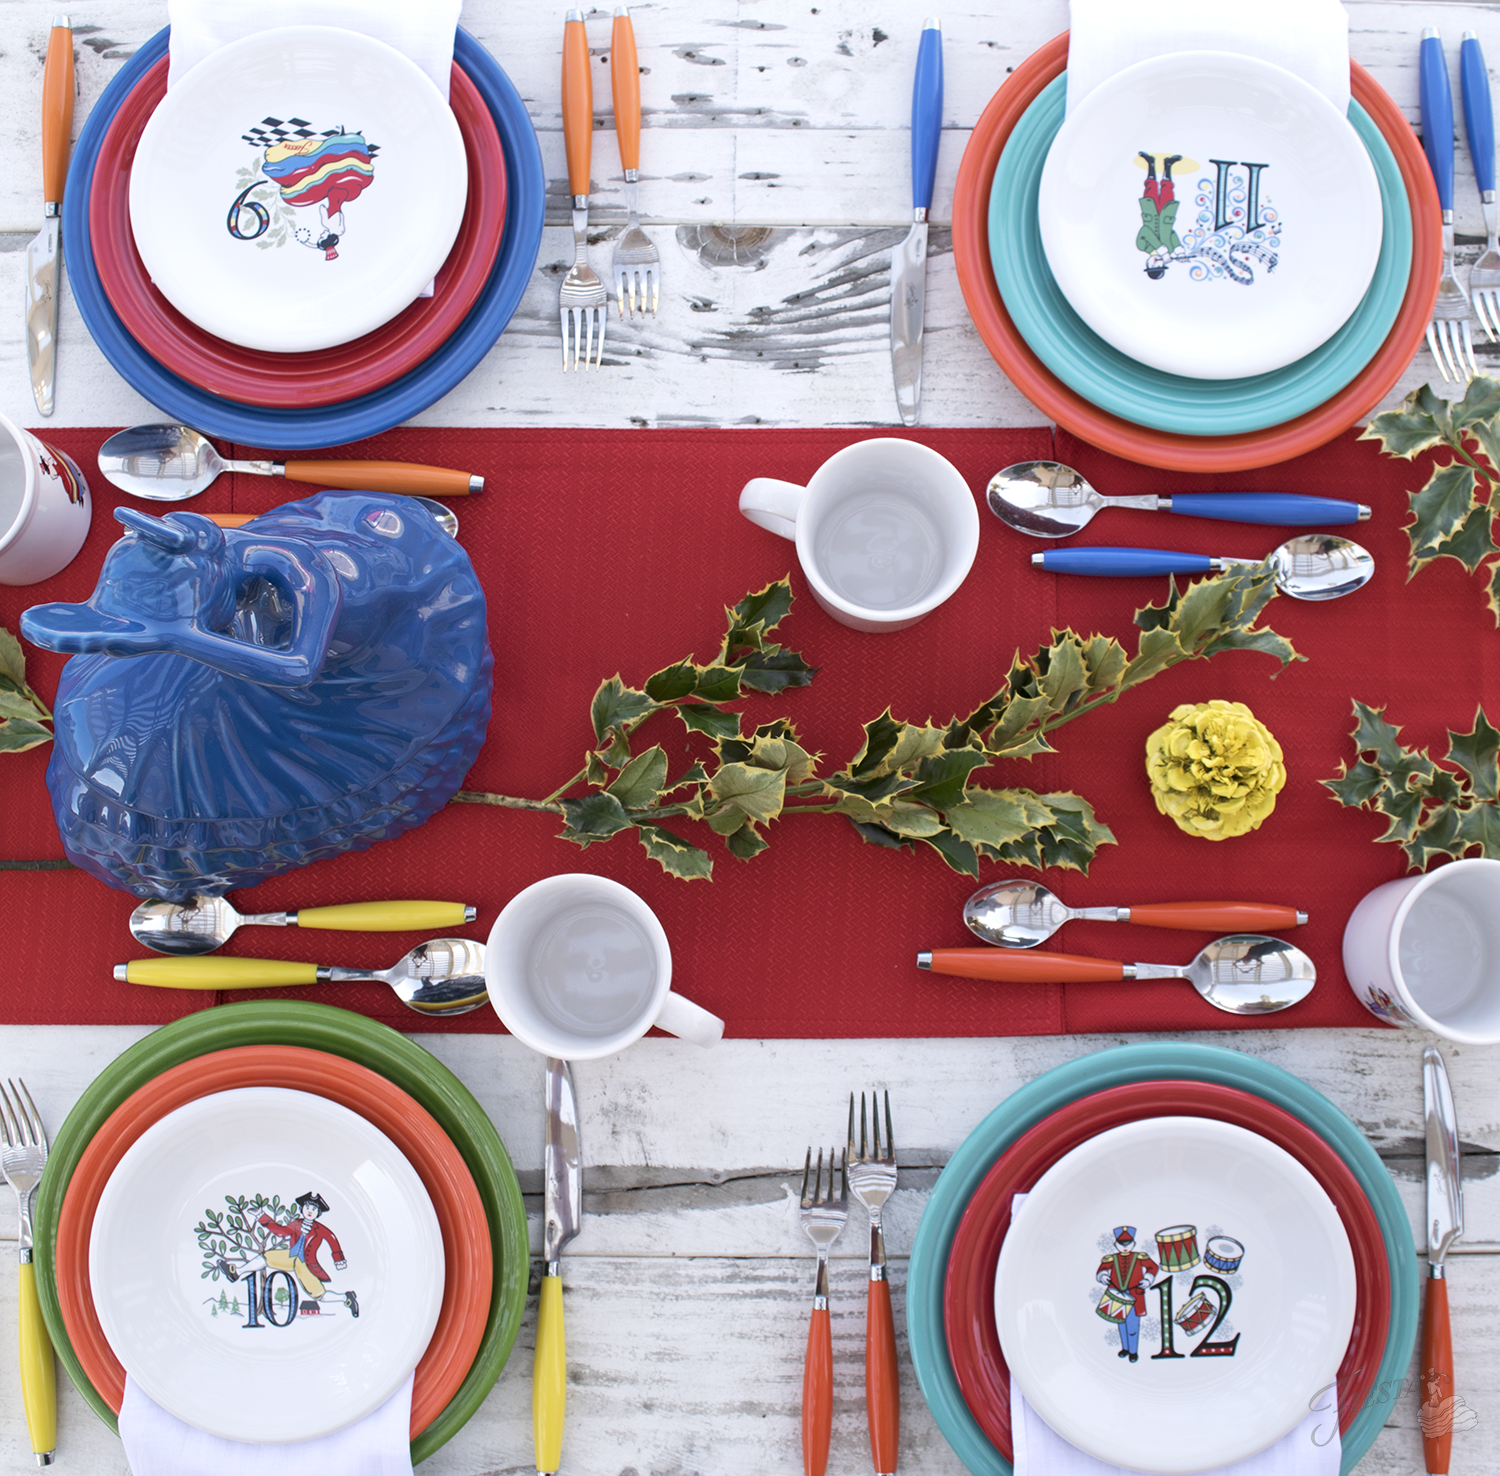 ... Christmas Tree Dinner Plate Fiesta 2017 Daffodil. Fiesta Cranberry Post 86 Reference  sc 1 st  Best Plate 2018 & Fiesta Christmas Tree Dinner Plates - Best Plate 2018